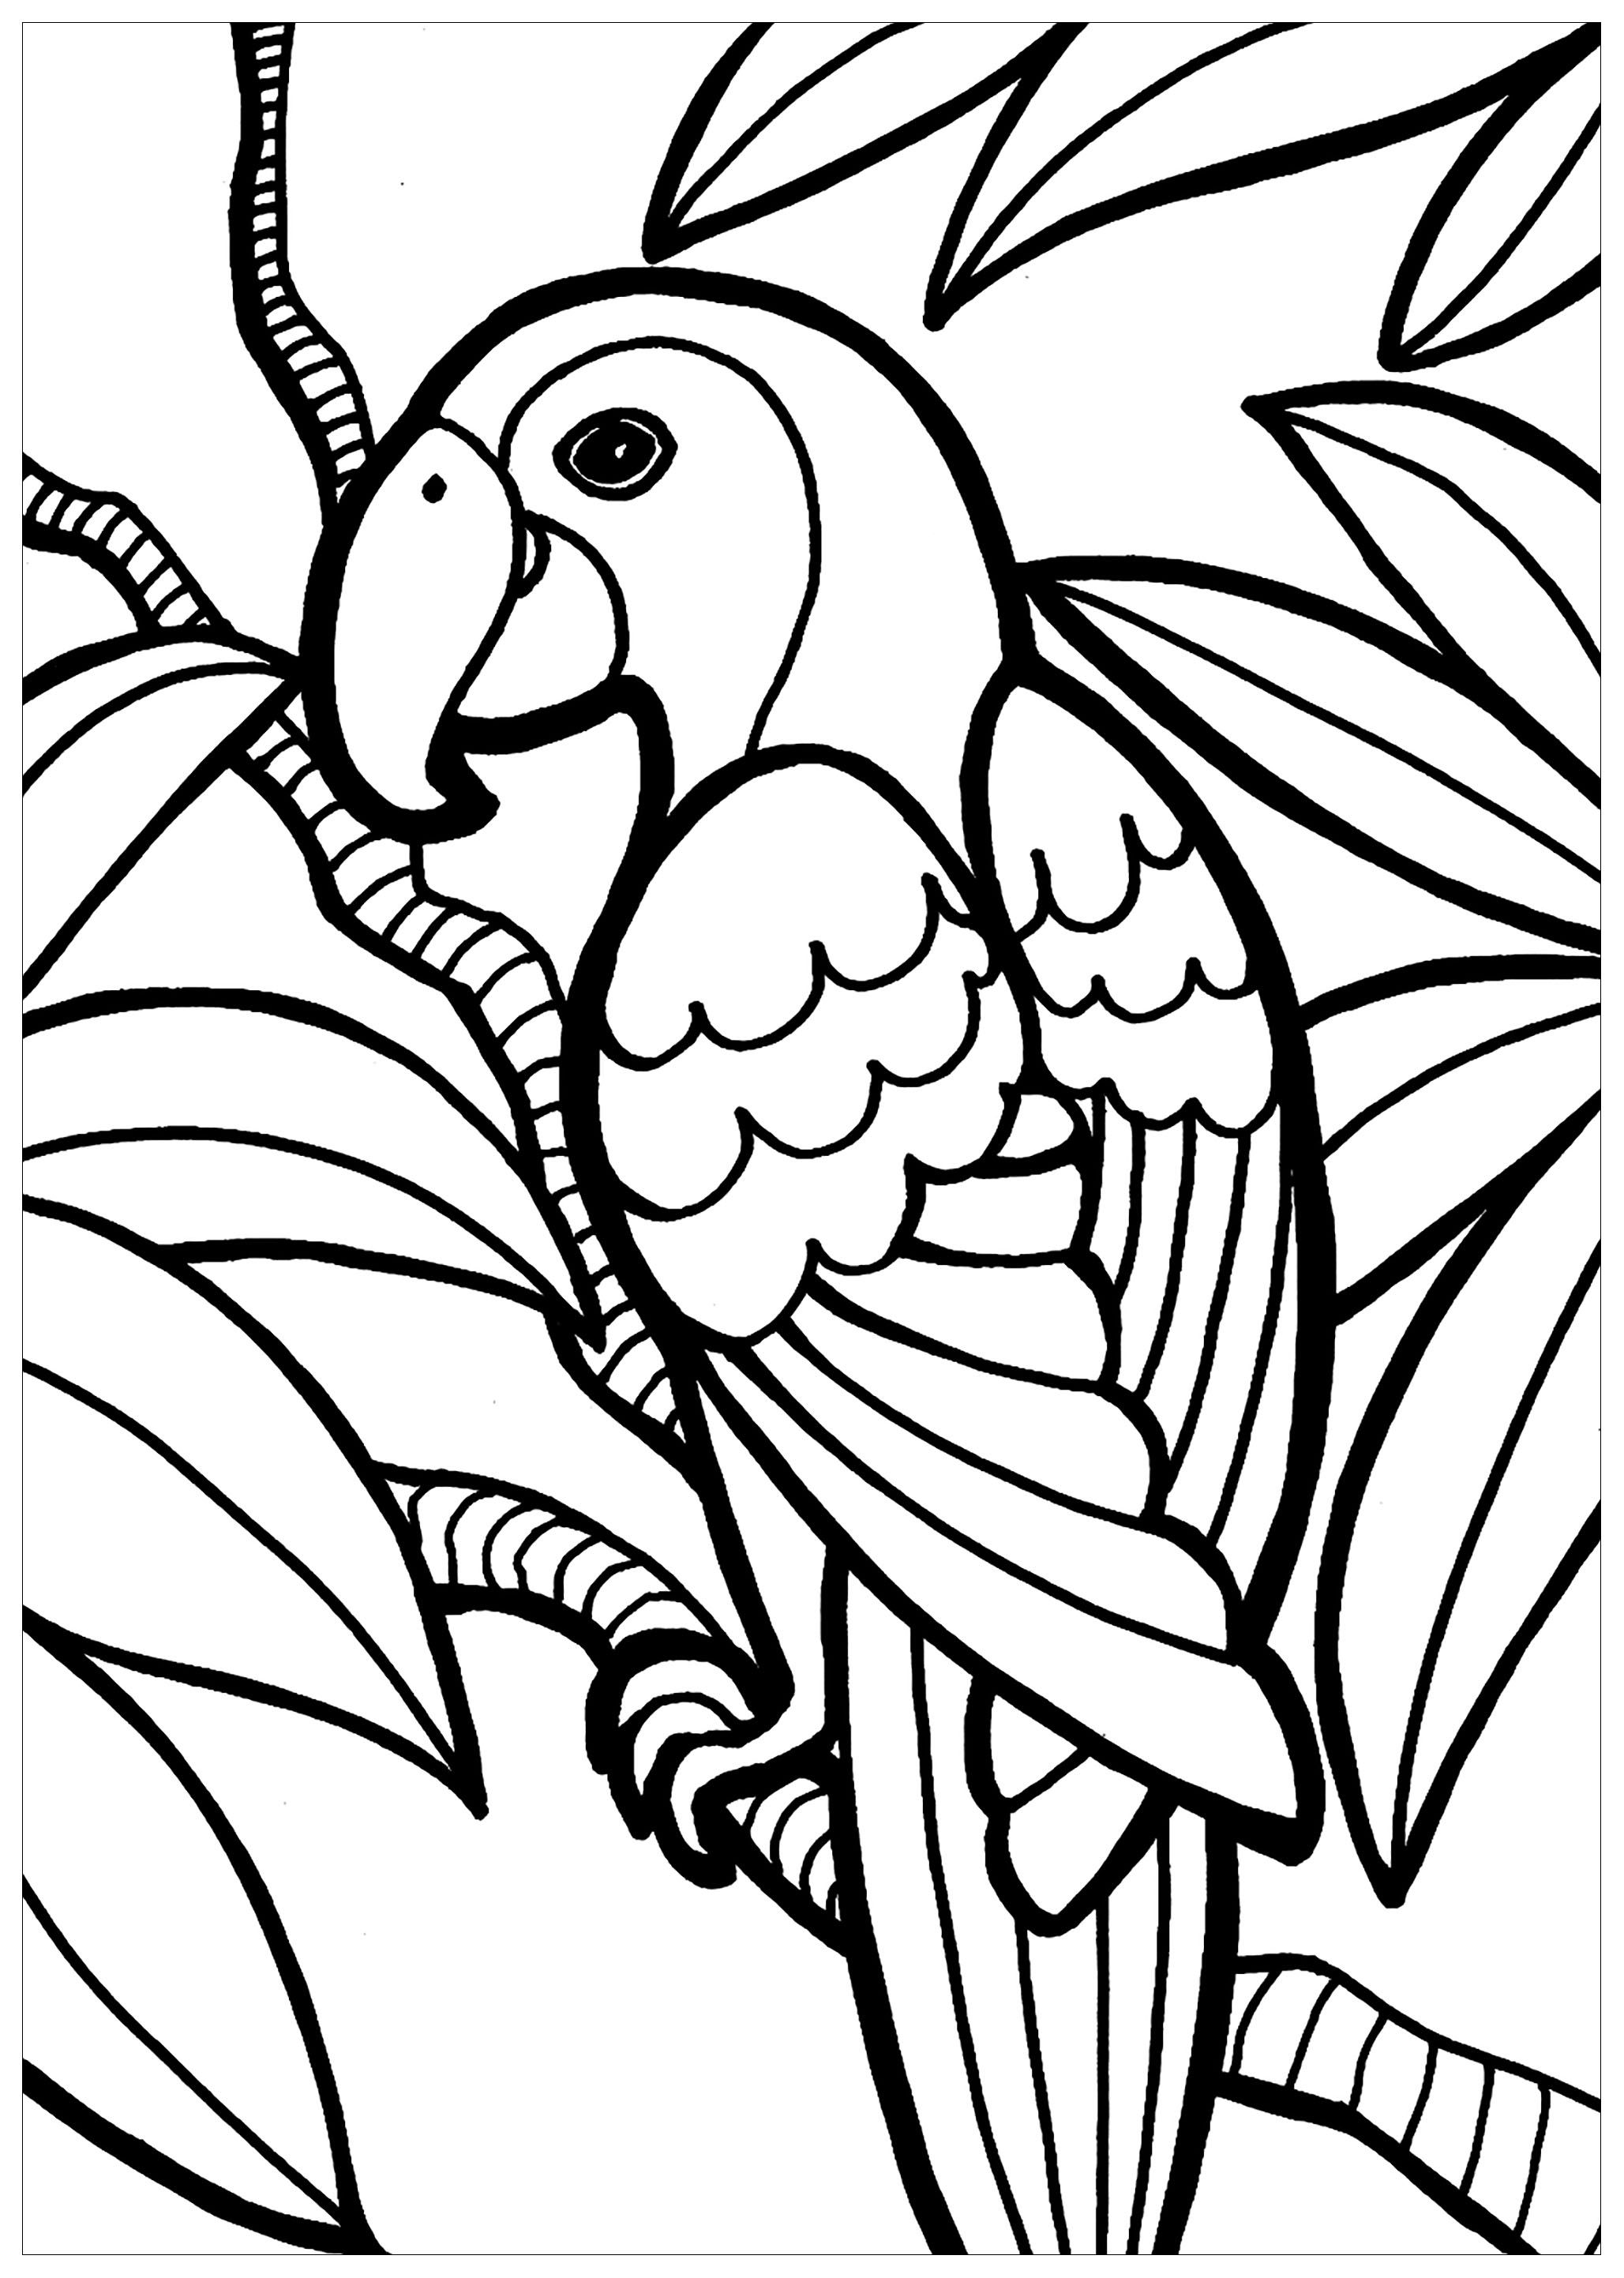 Free Birds Coloring Page To Download From The Gallery Birds In 2020 Jungle Coloring Pages Bird Coloring Pages Easy Coloring Pages